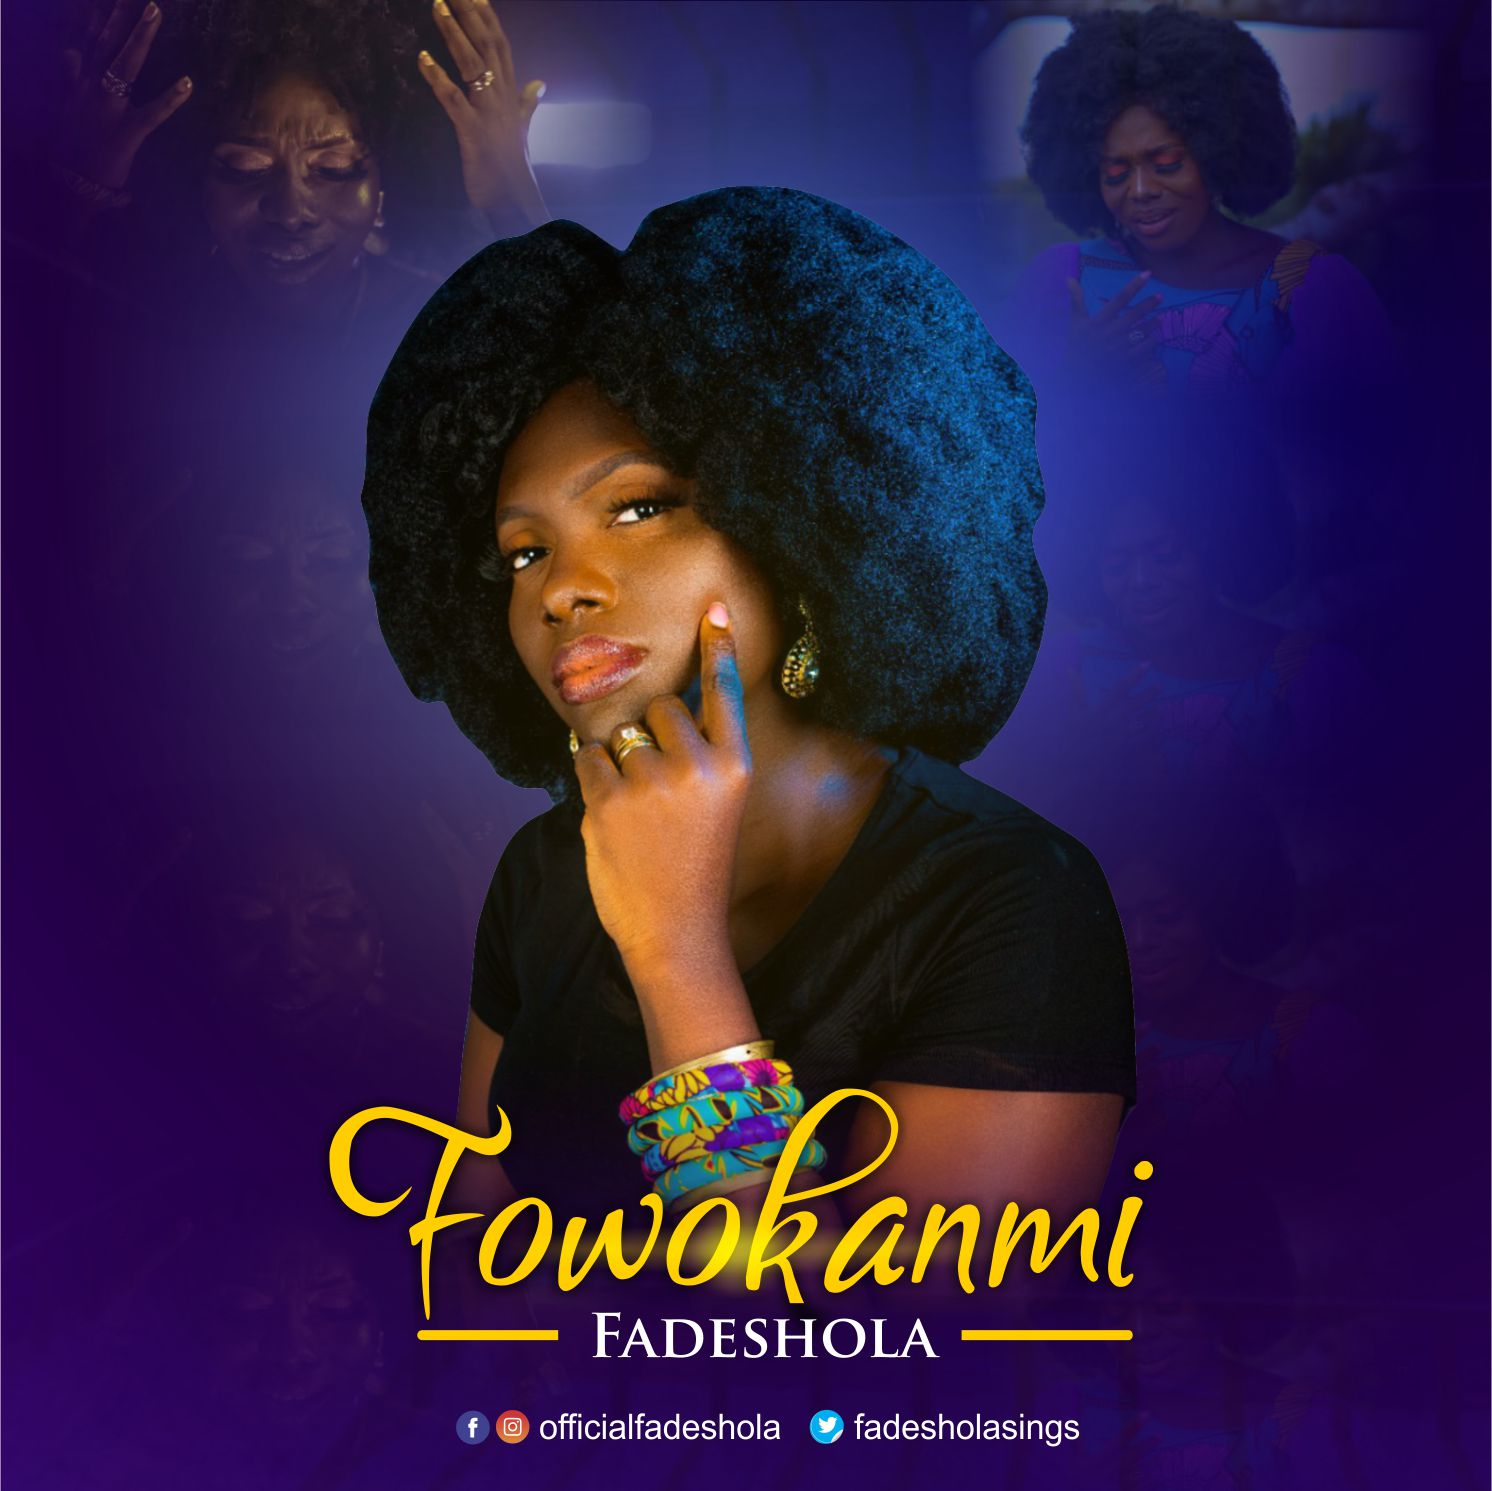 Fadeshola – Fowokanmi (Video)